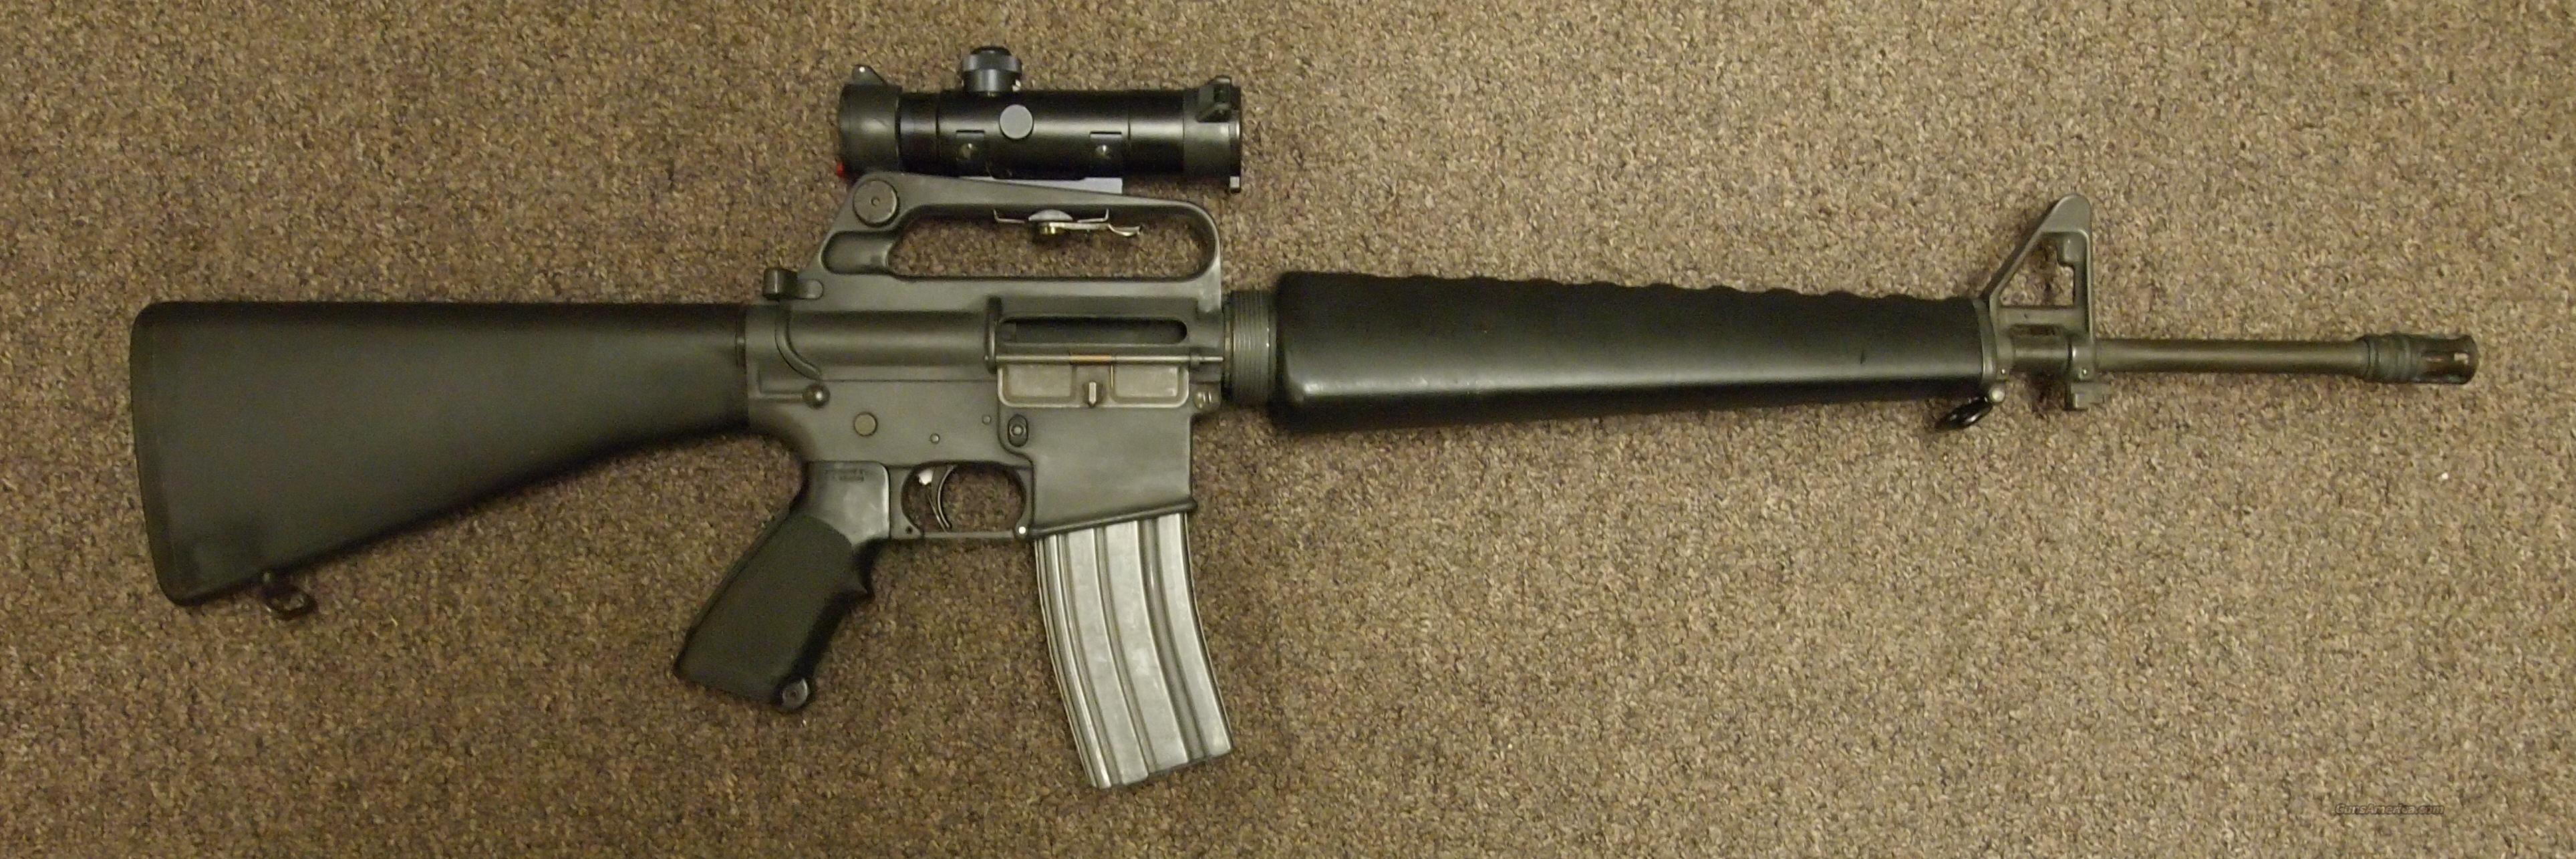 Colt AR-15 SP1 .223 (Pre-Ban),   Guns > Rifles > AR-15 Rifles - Small Manufacturers > Complete Rifle